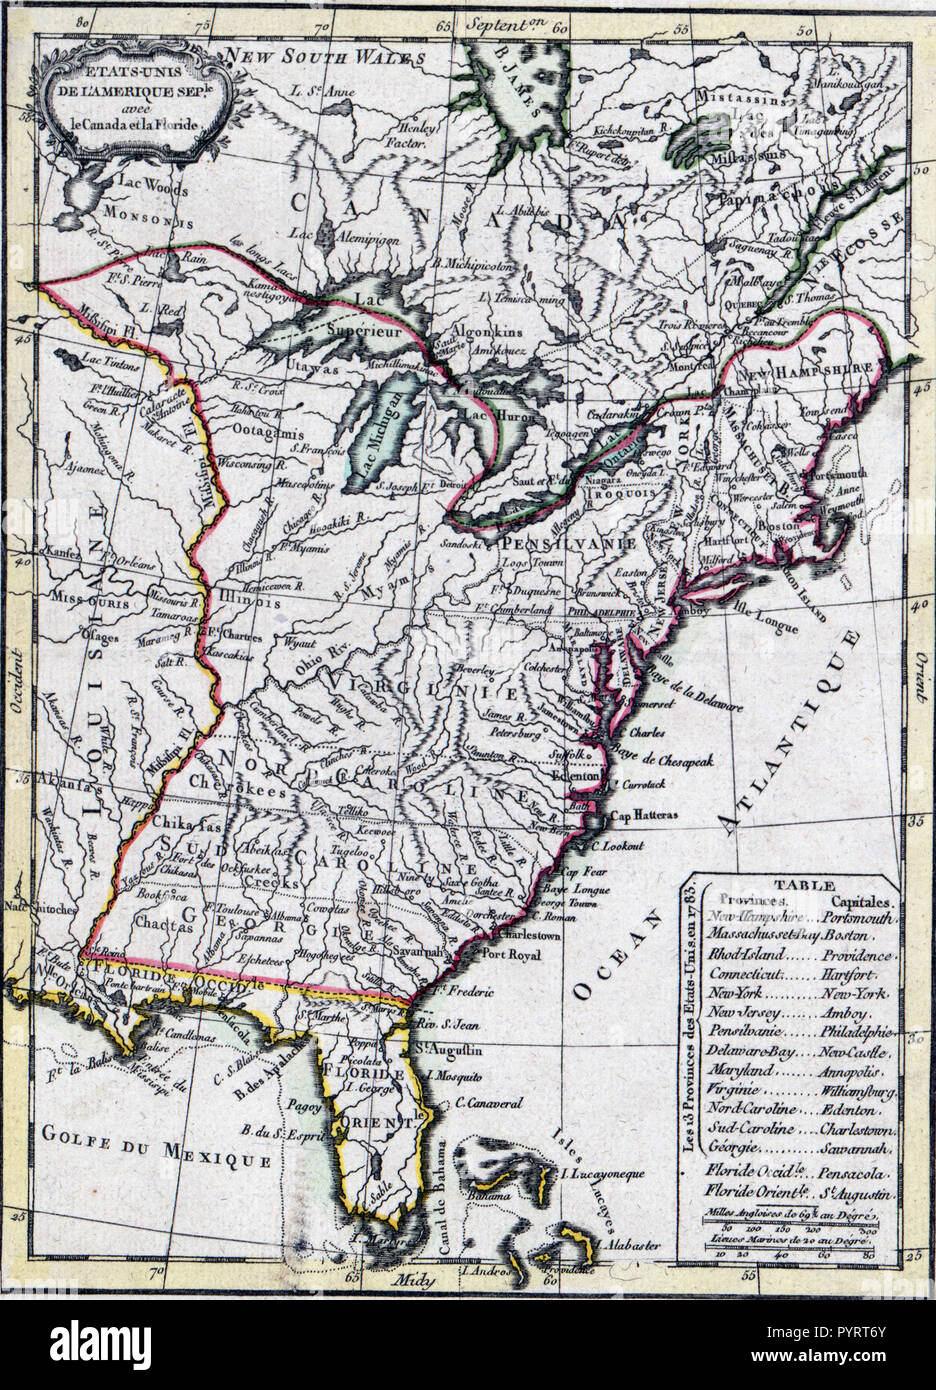 Vintage Maps Antique Maps United States Of America Map Ca 1780s